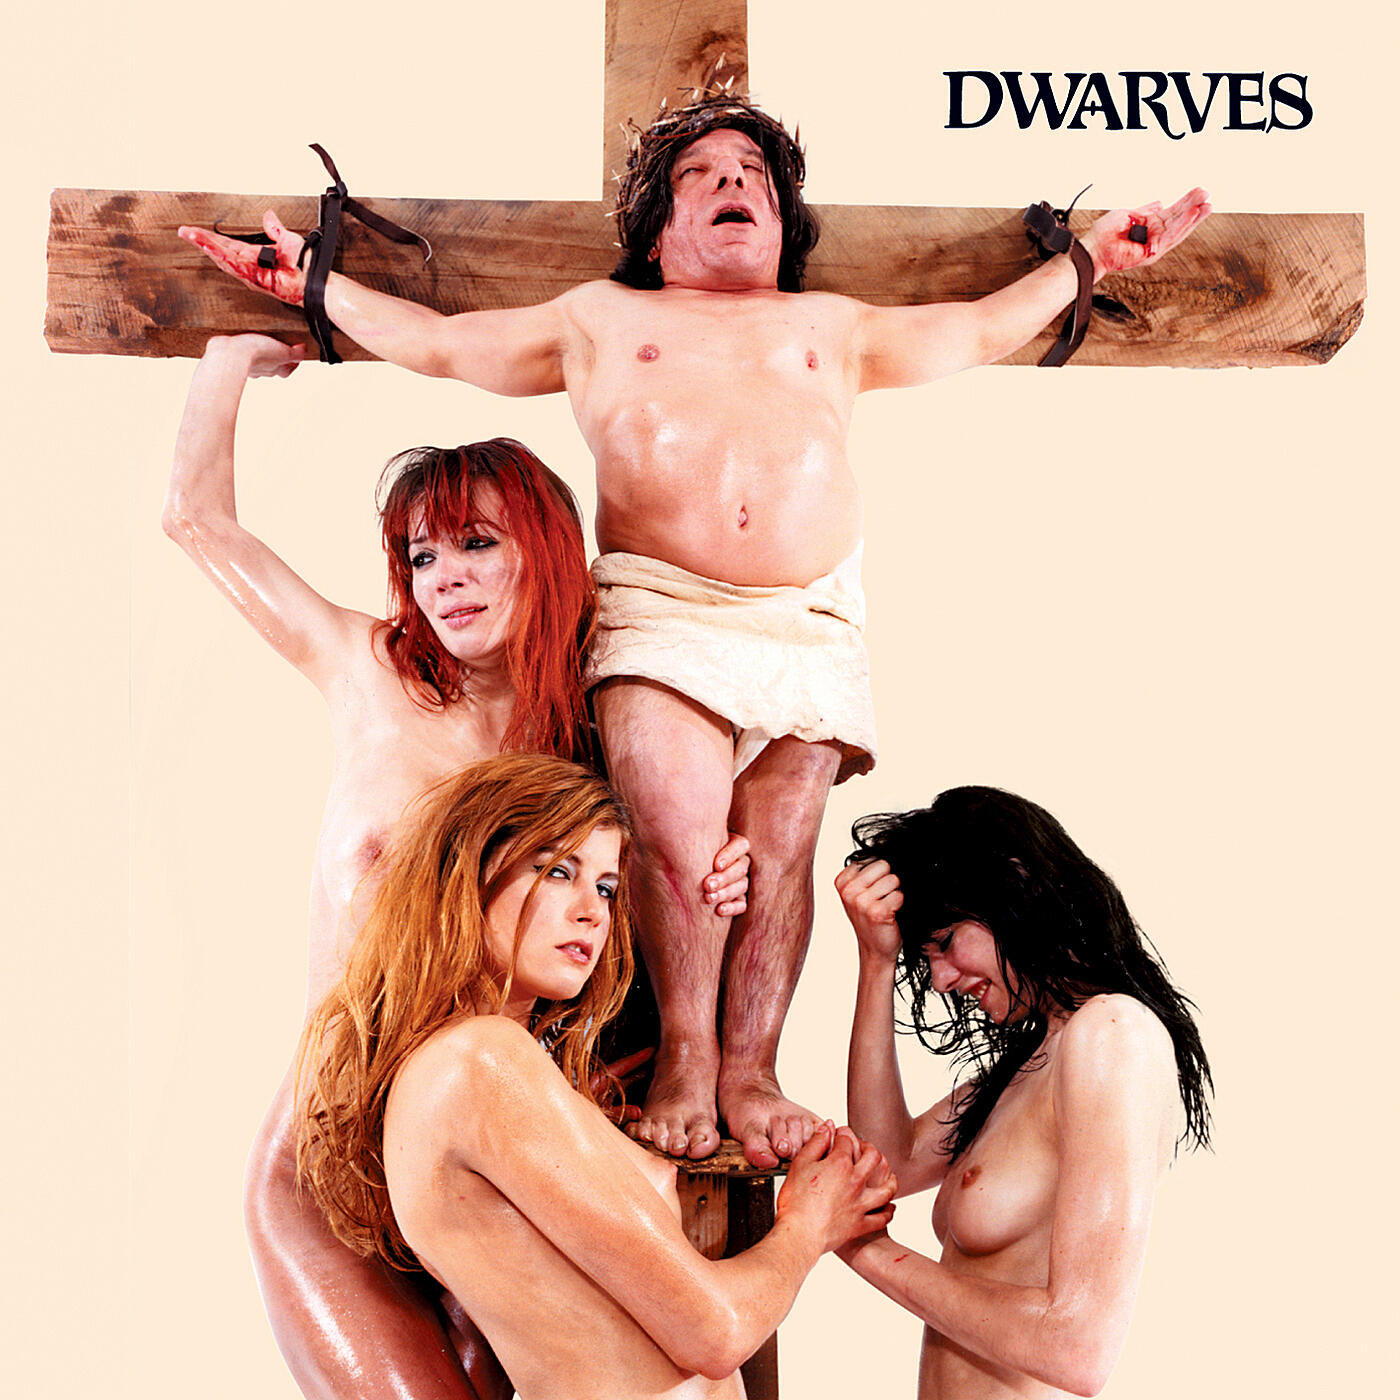 Sex dwarf song meaning